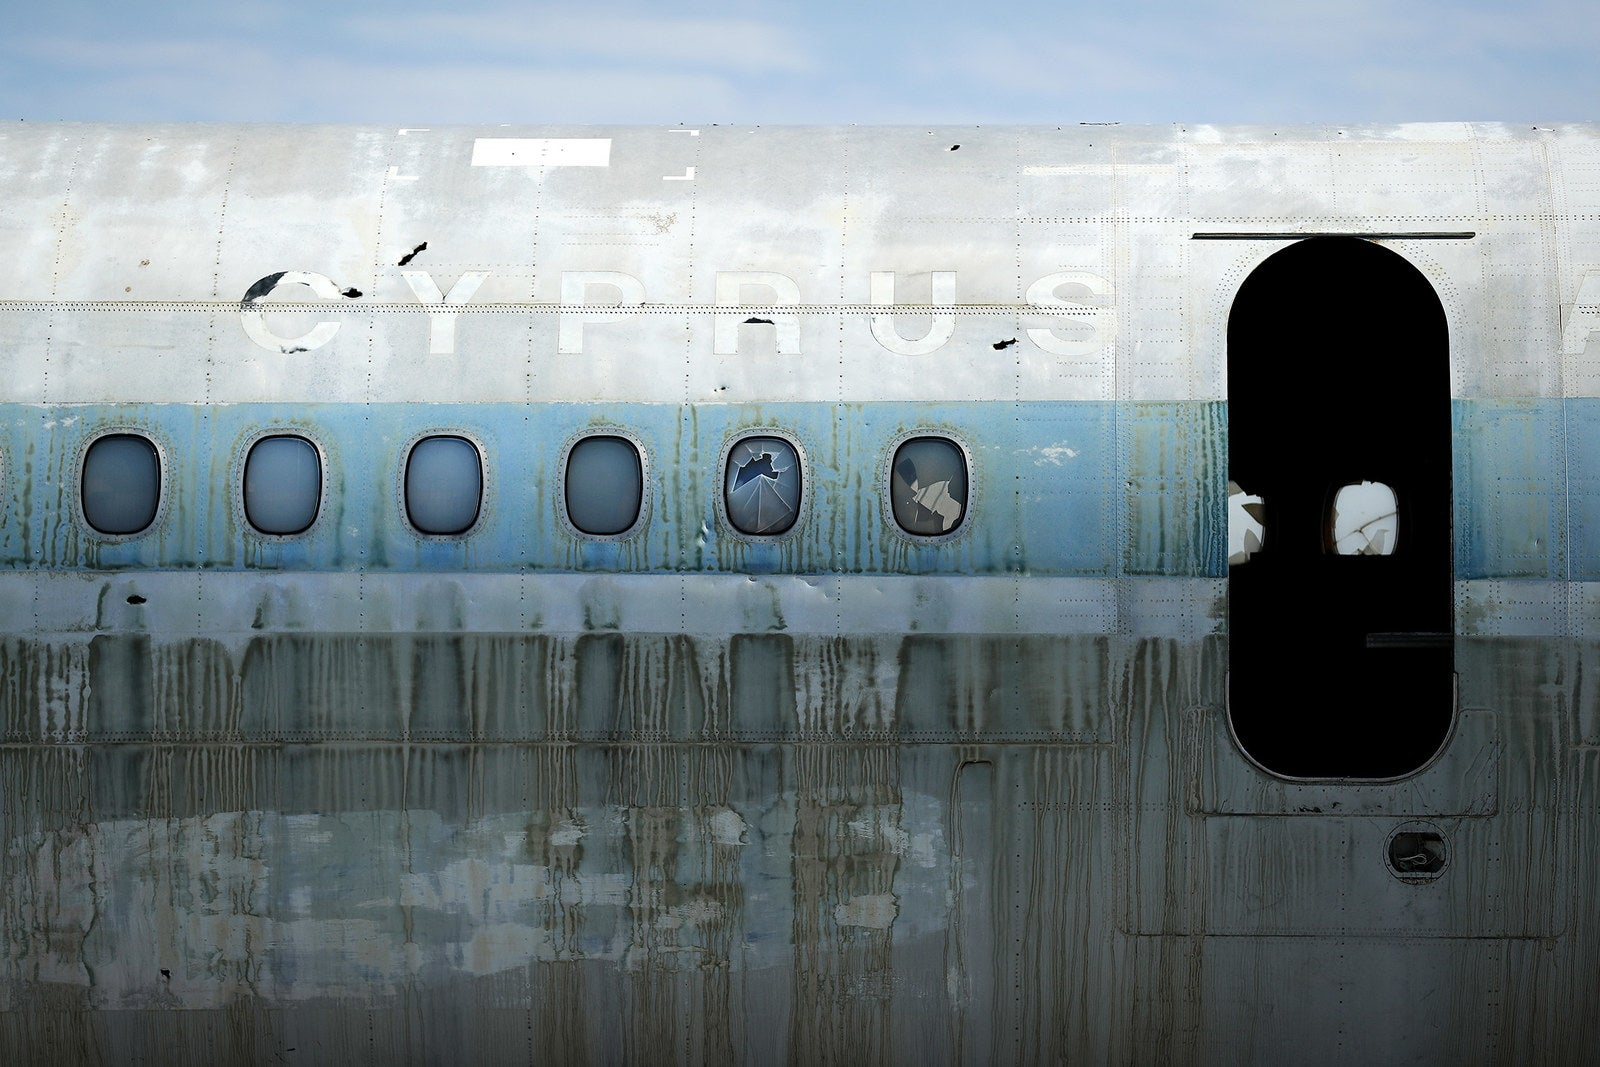 A abandoned and decaying Cyprus Airways passenger plane sits on the runway.